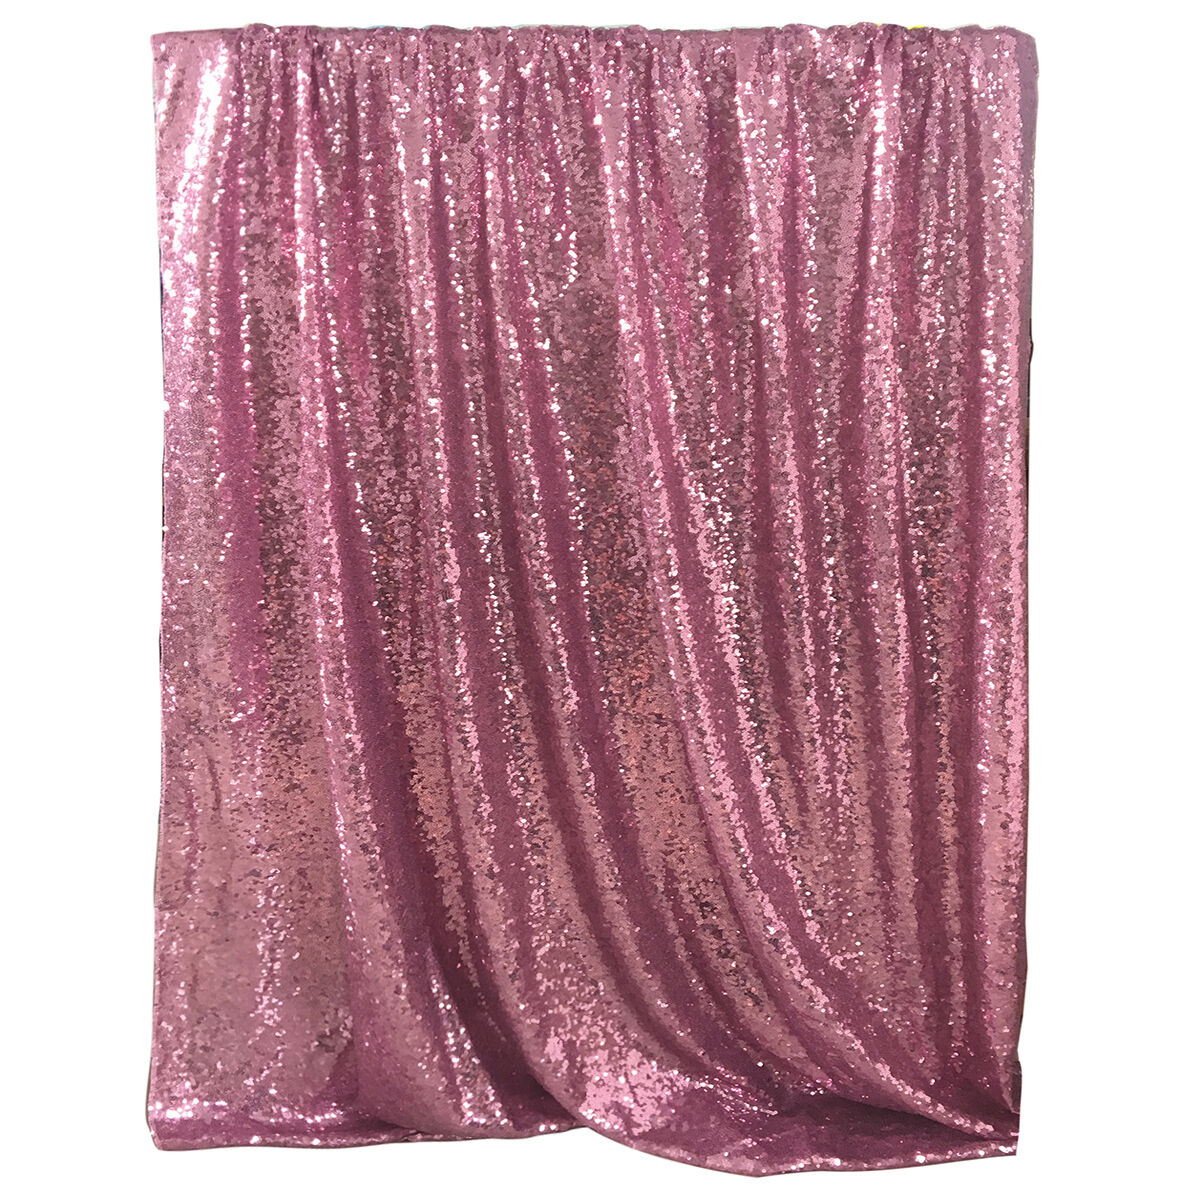 Pink Sequin Curtains 4ftx6ft Sequin Curtain Wedding Photobooth Backdrop Party Photography Background Pink